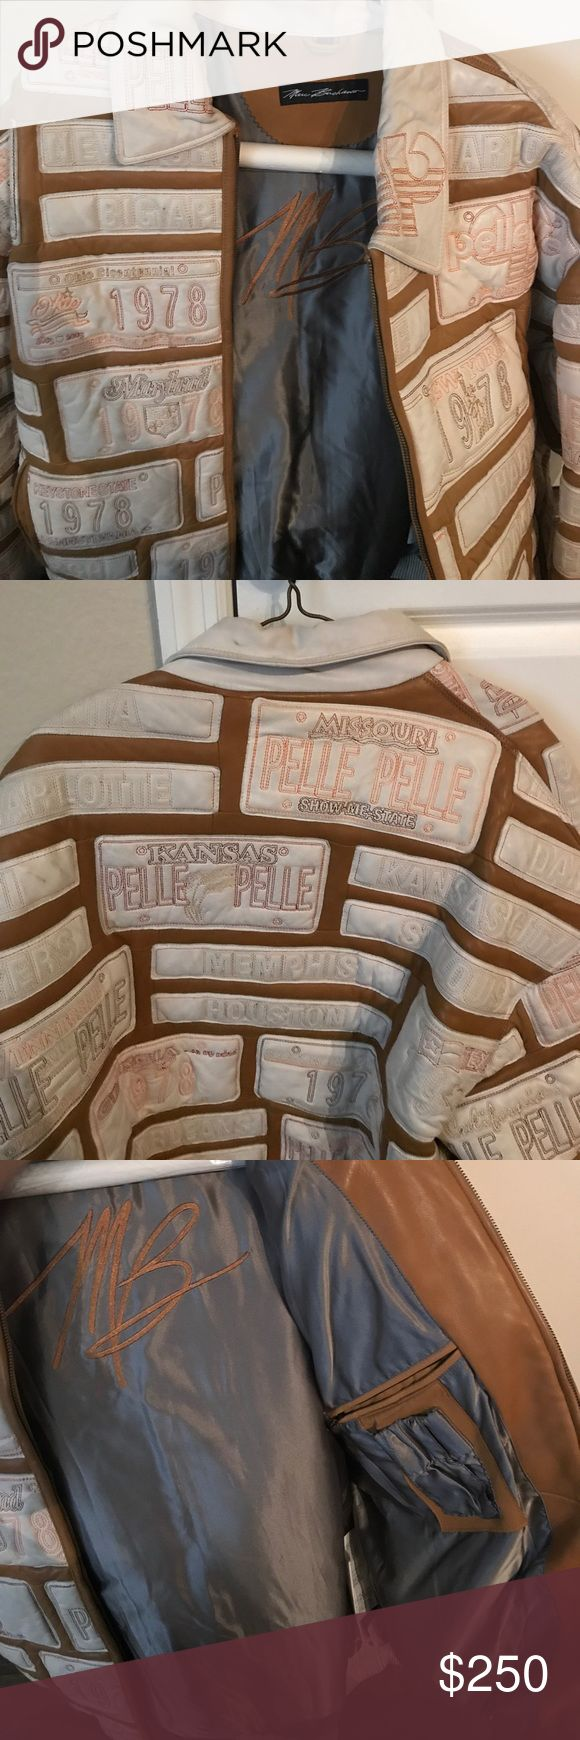 """100% Leather Pelle Pelle Jacket """"Marc Buchanan"""" Used size 48. Great condition! Very warm and limited edition. Jackets & Coats"""